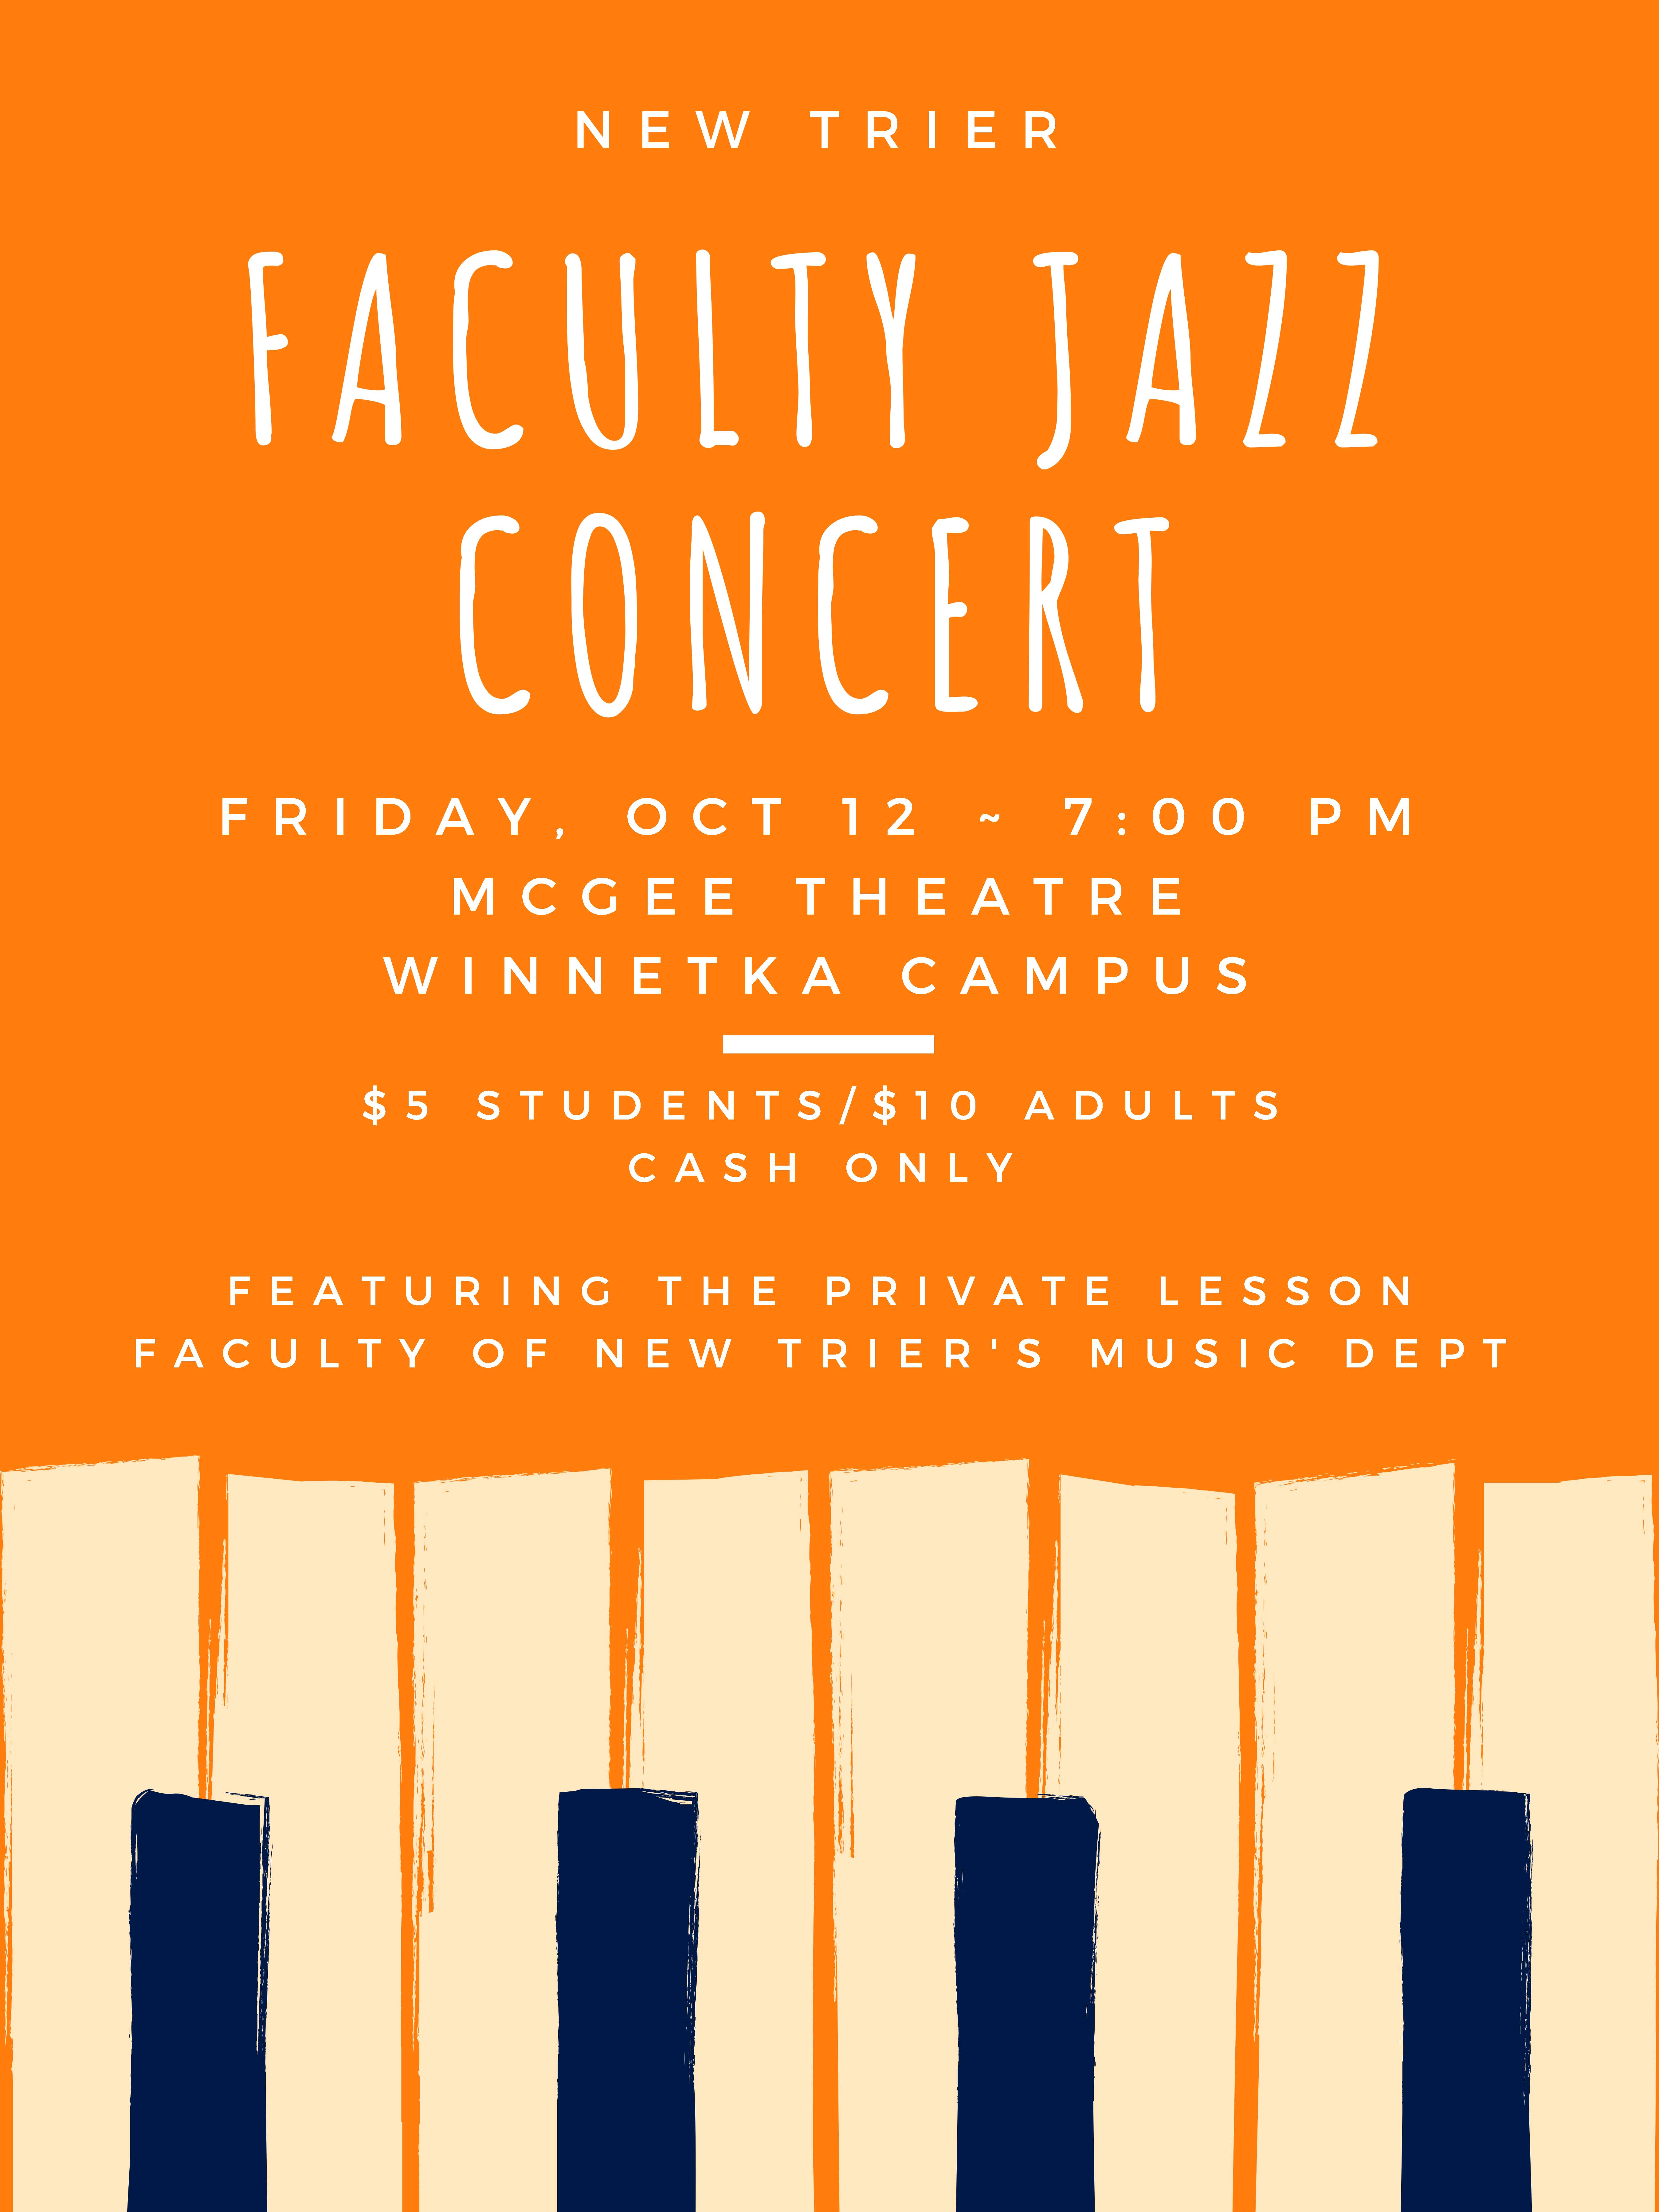 New Trier Faculty Jazz Concert